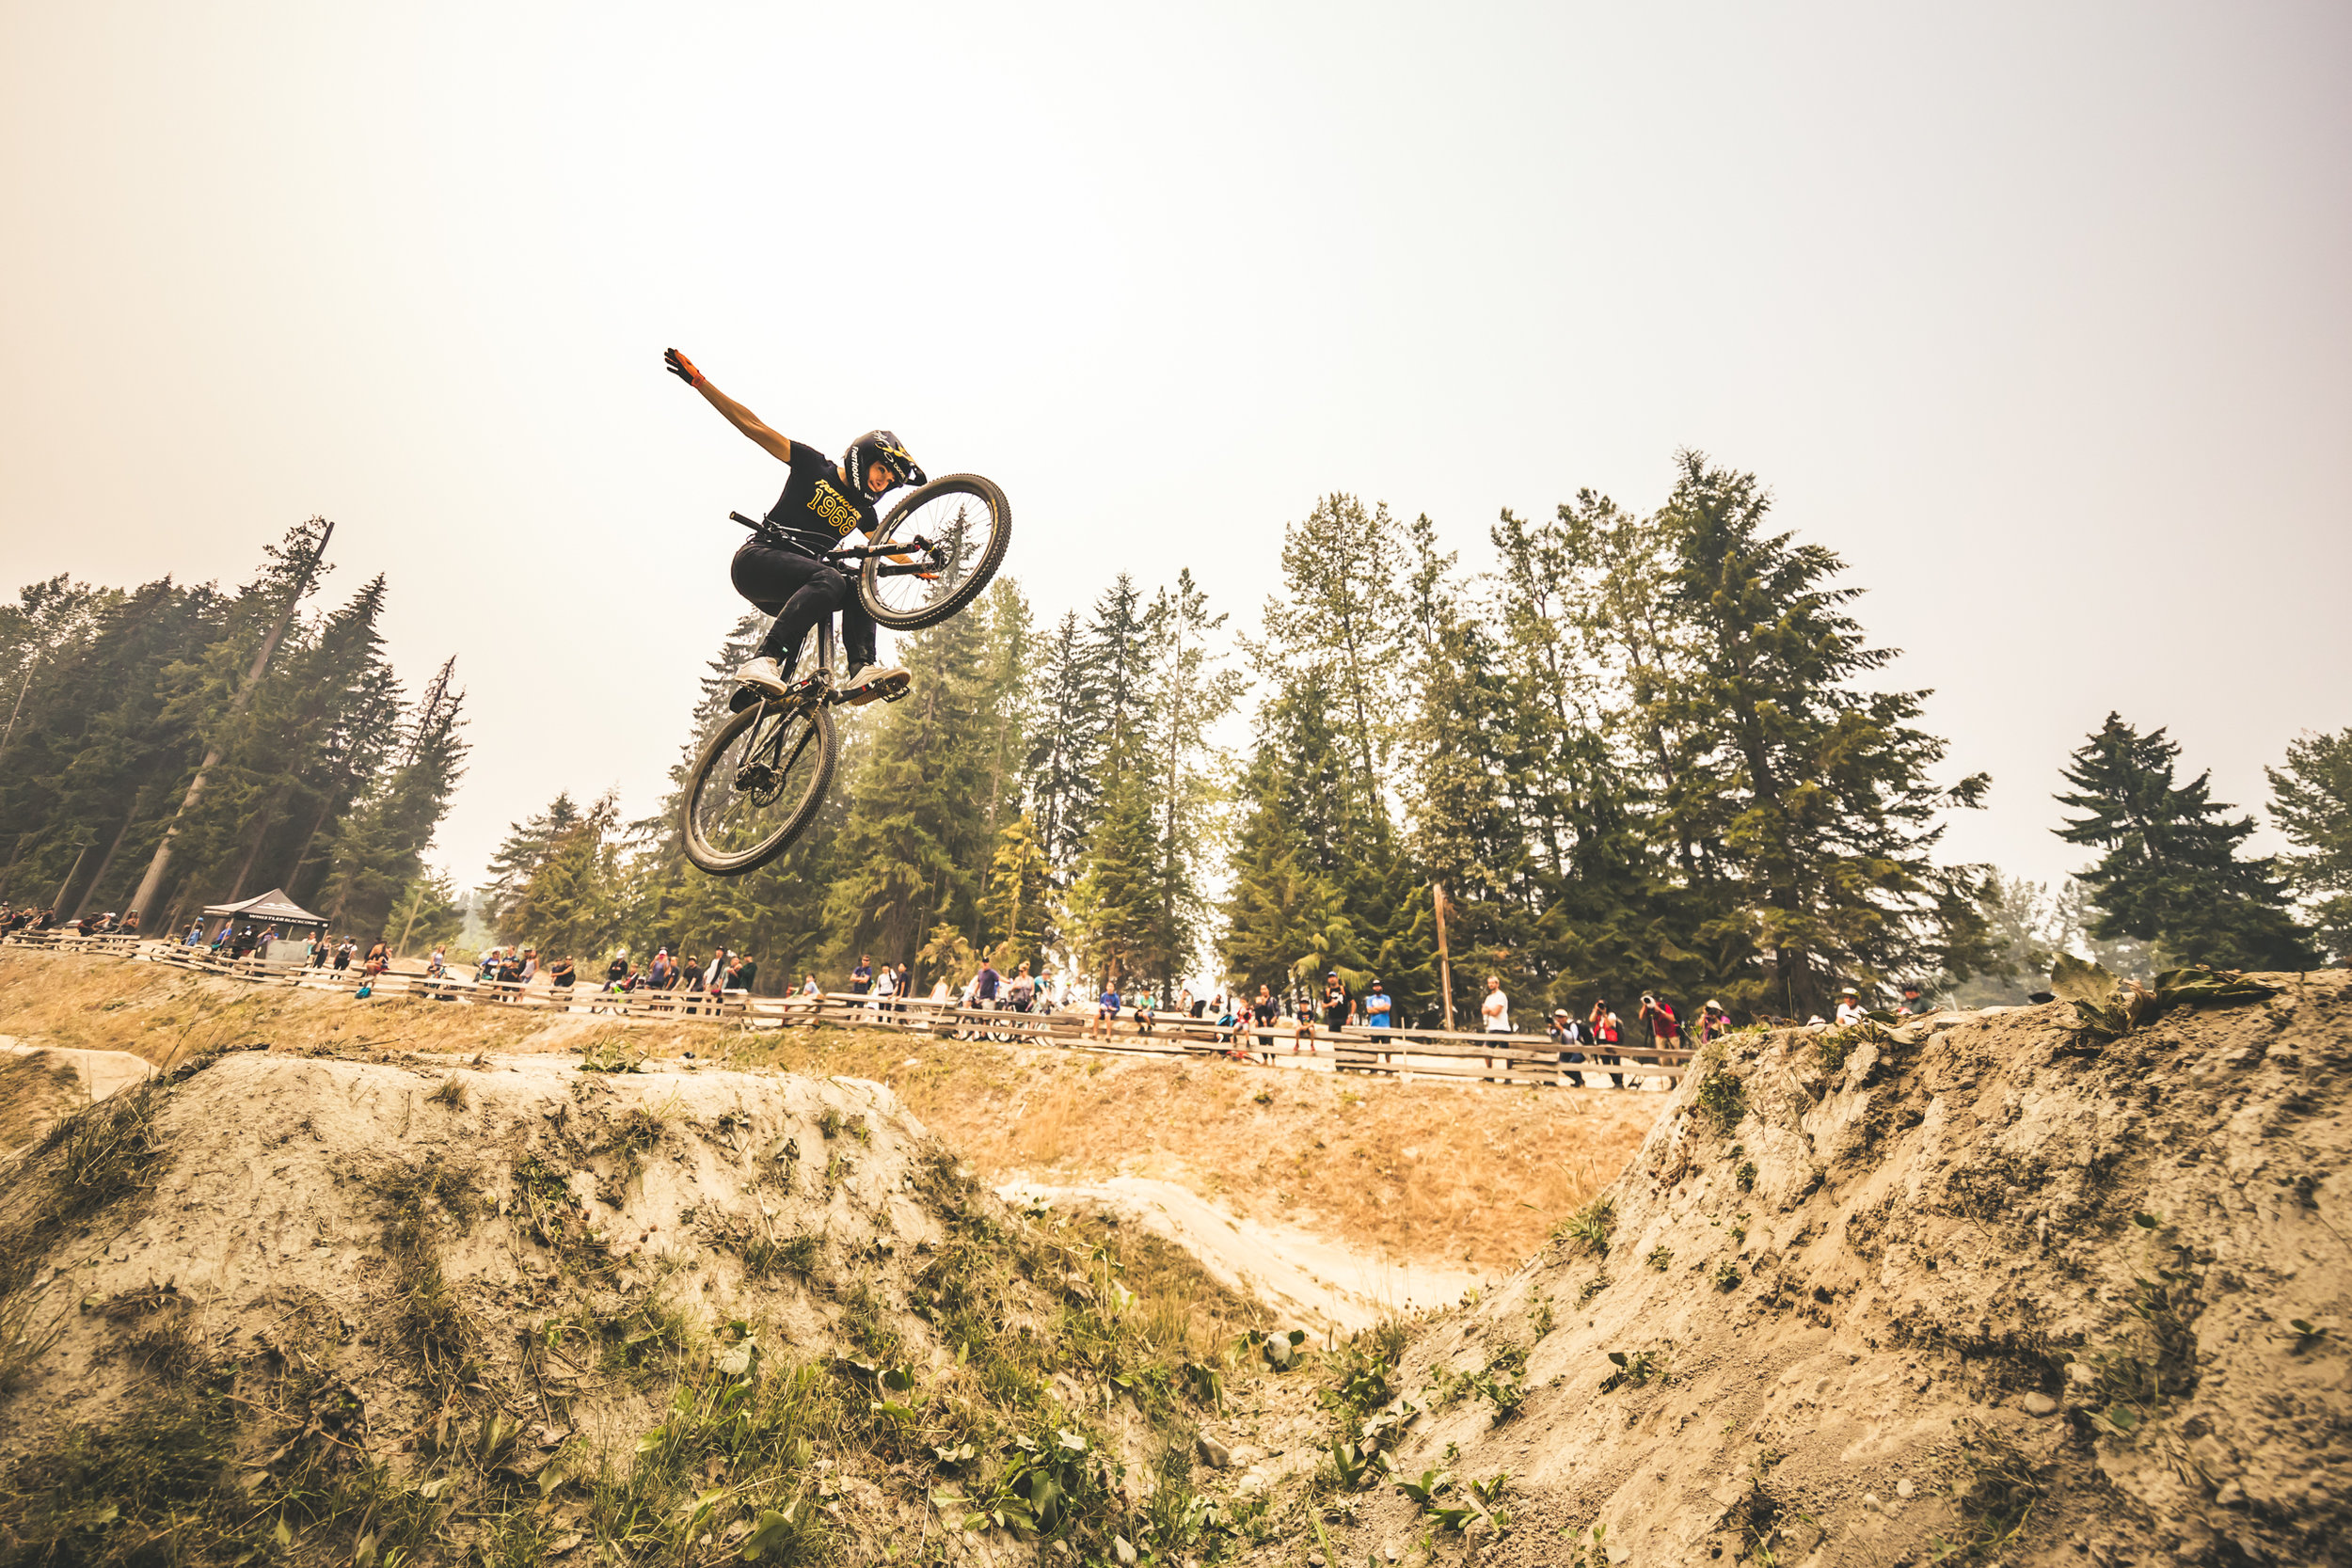 Caroline Buchanan's winning Tuck No Hander at the Ladies Only Jump Jam, Crankworx, Whistler. Photo credit Trevor Lyden